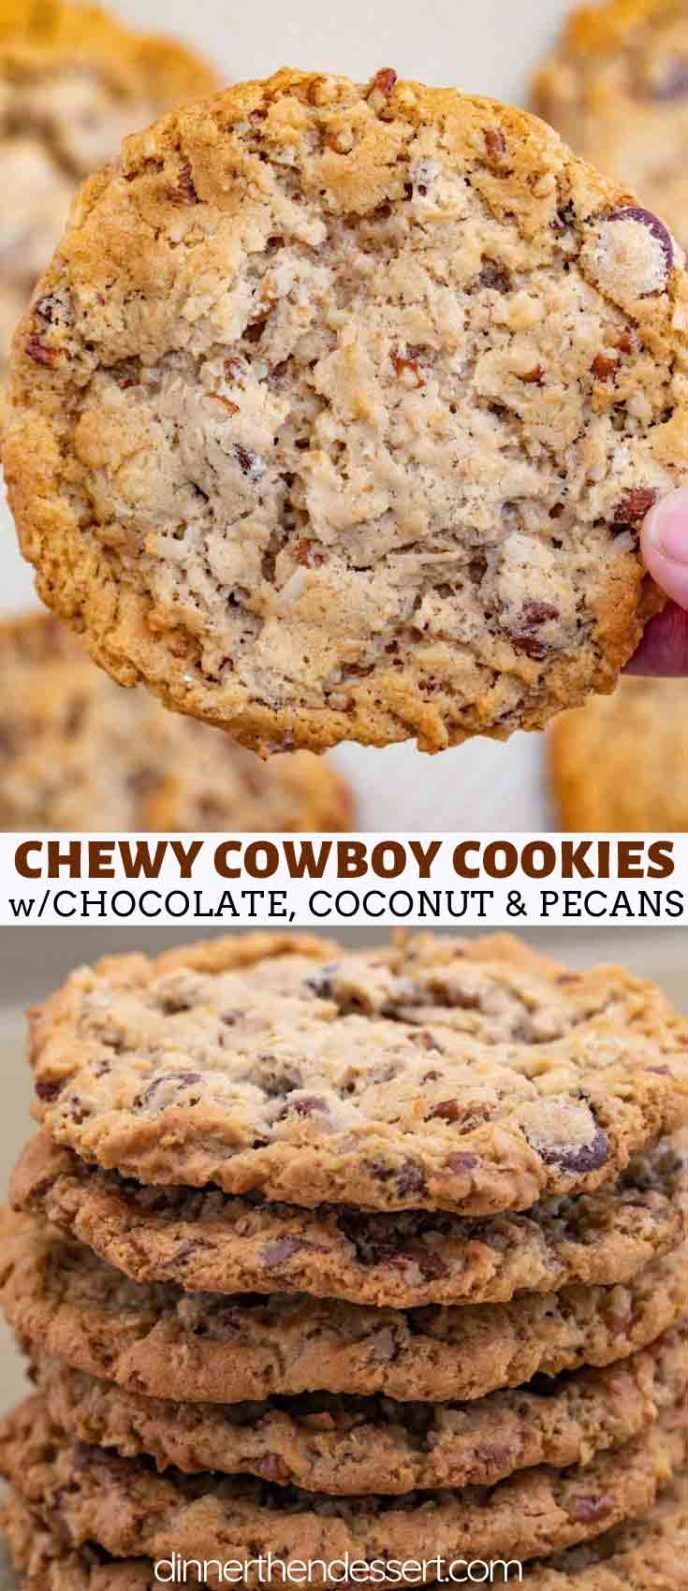 Cowboy Cookies are chewy oatmeal brown sugar cookies with chocolate chips, coconut and pecans that are done in less than 30 minutes! #cookies #cowboycookies #chocolate #holidays #christmas #baking #dessert #dinnerthendessert